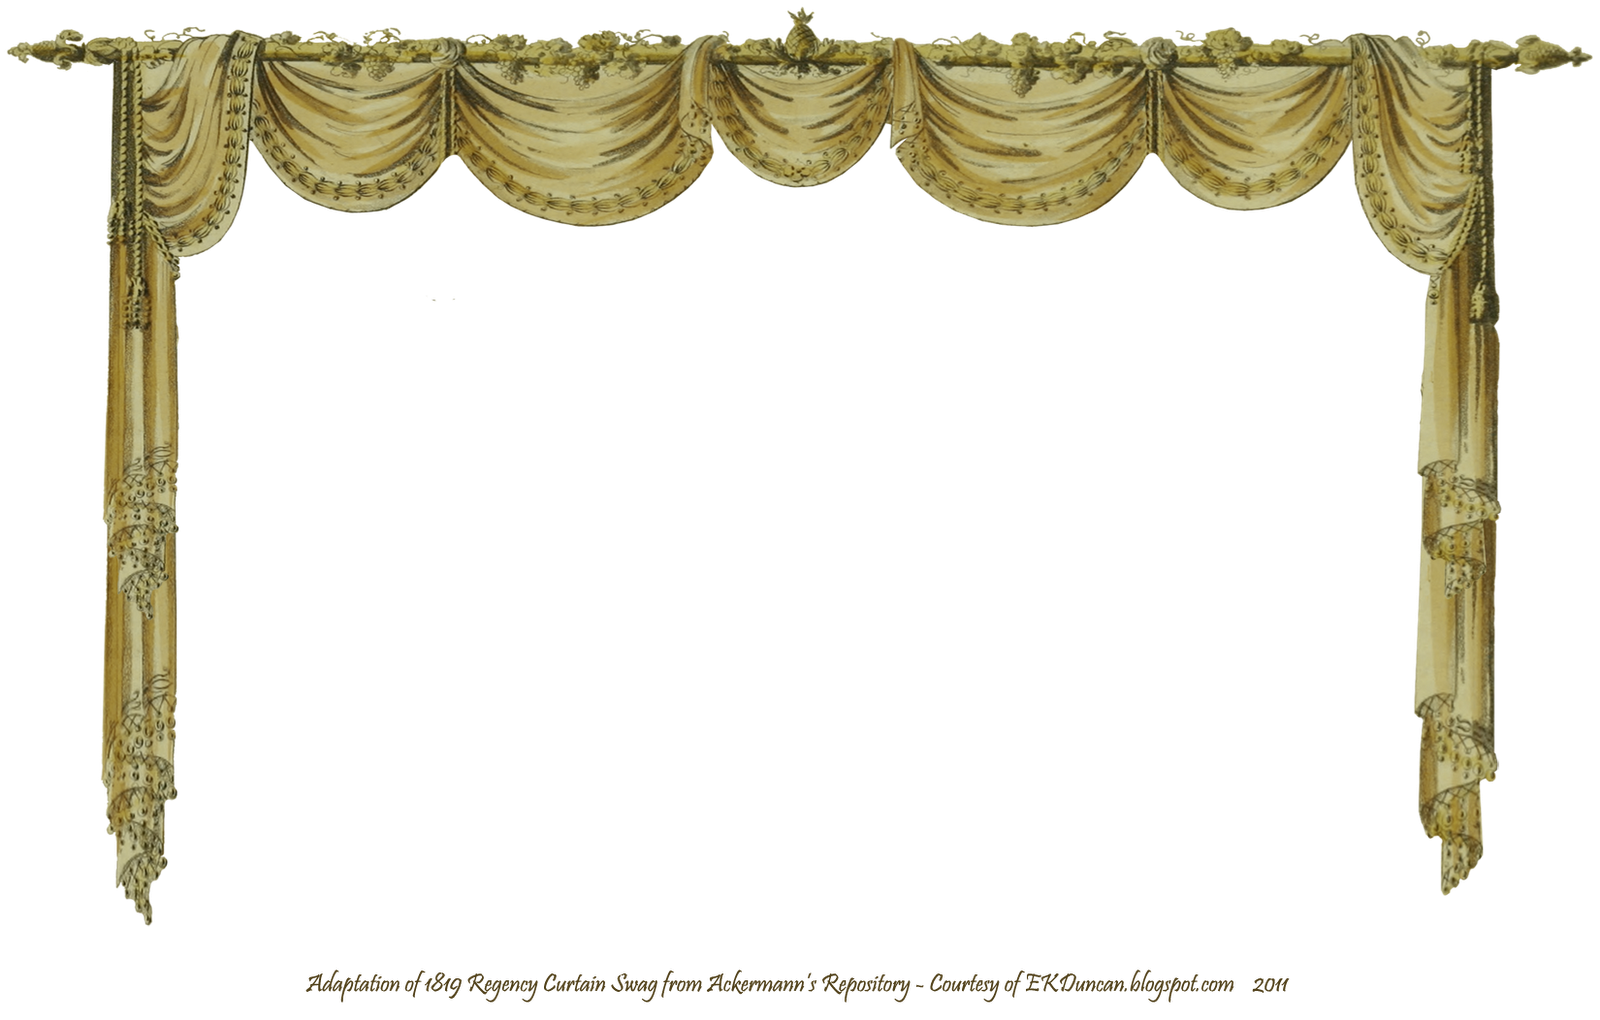 Theatre curtains png - Ekduncan My Fanciful Muse Regency Ladies Of Fashion Ackermanns